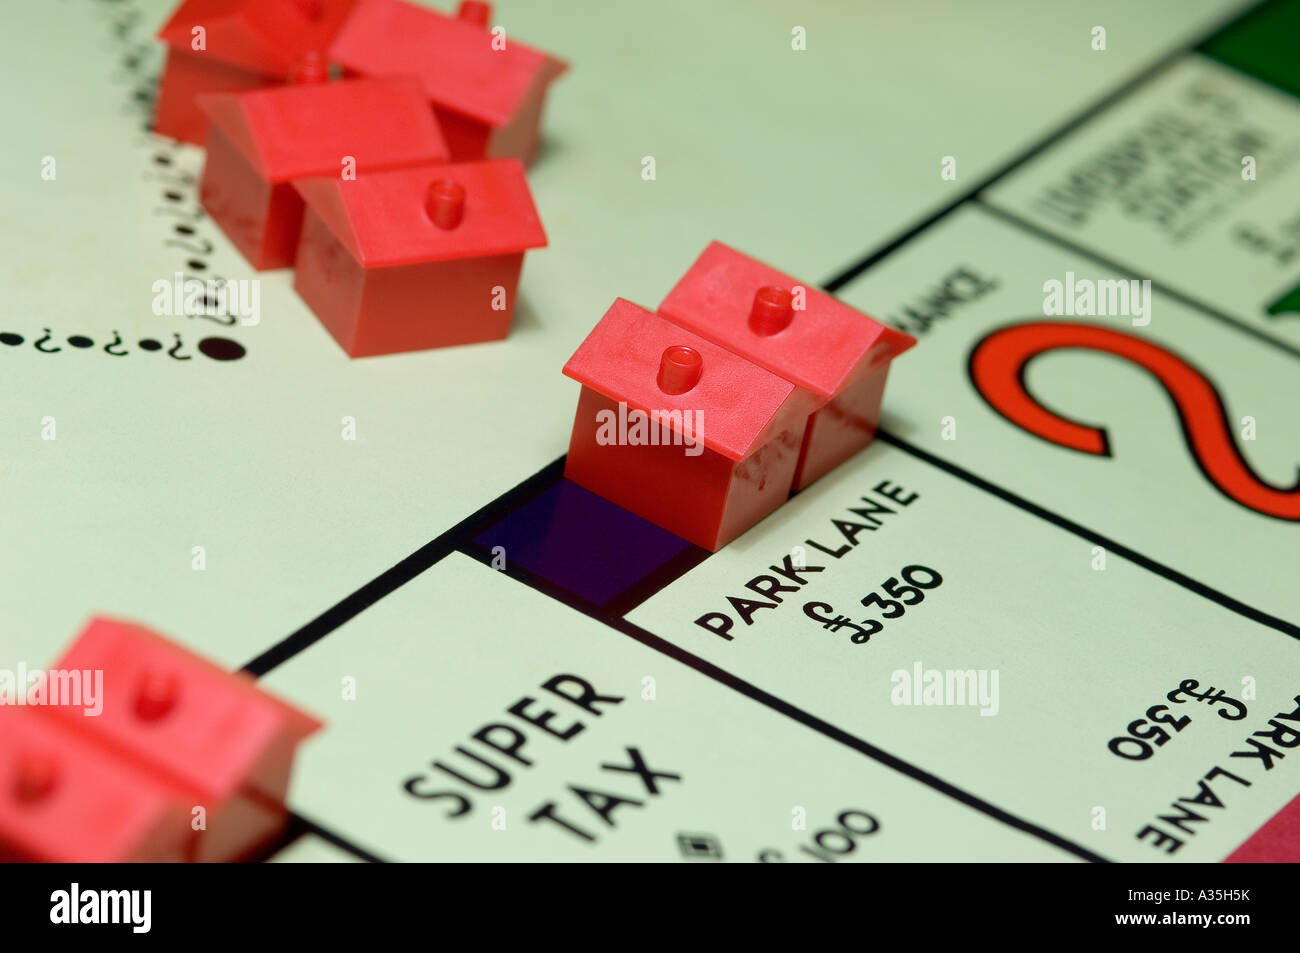 Close up of monopoly board game property and money concept Stock Photo